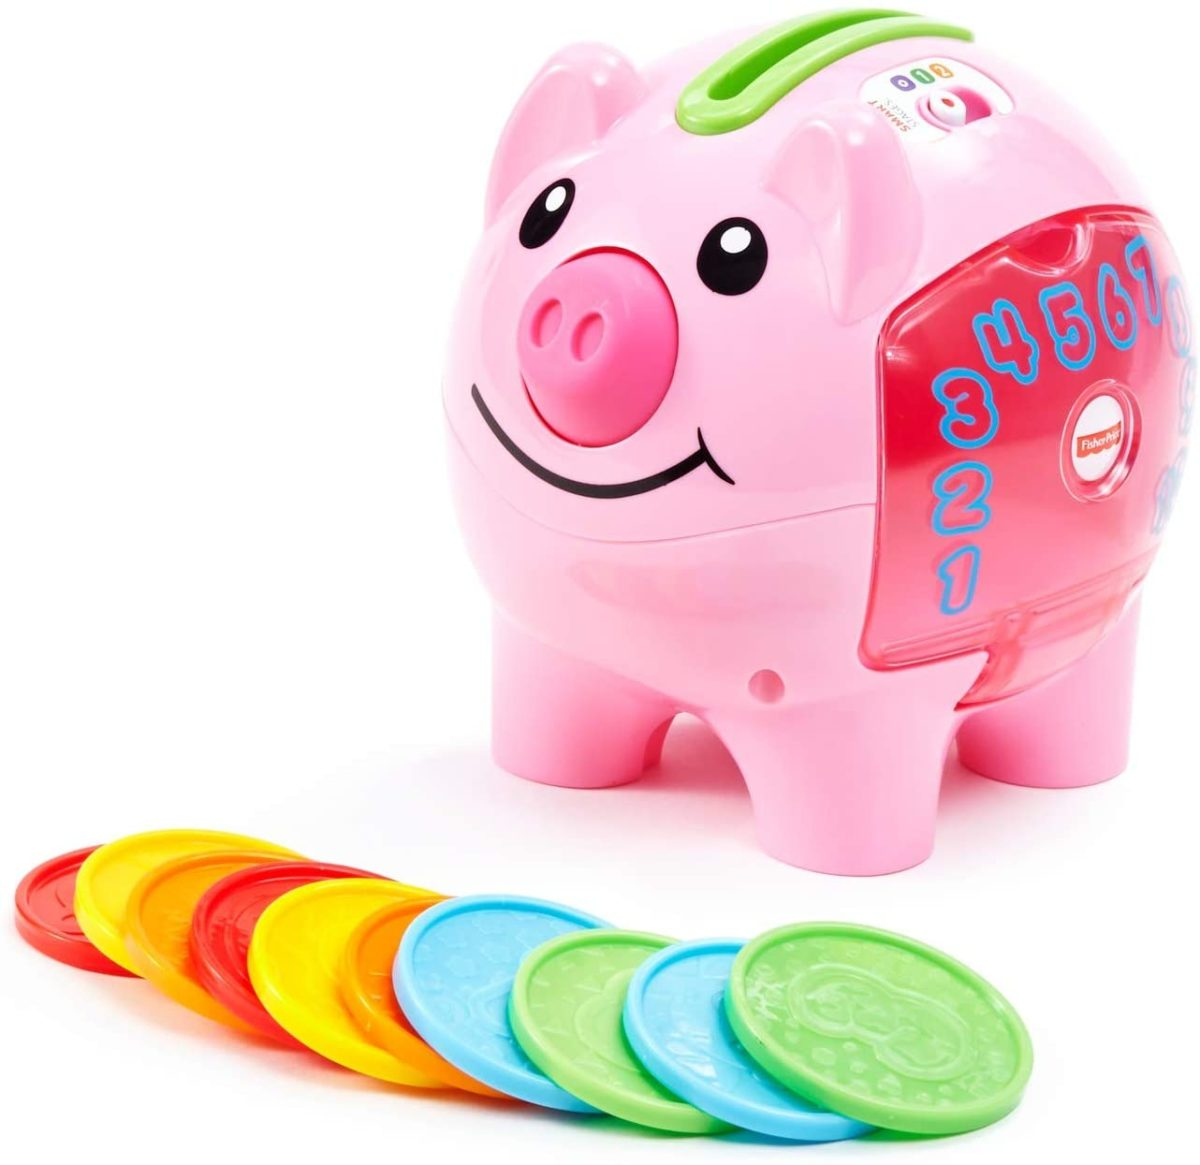 22 top quality fisher-price toys that also educational and entertaining | parenting questions | mamas uncut 613 puoi4vl. ac sl1500